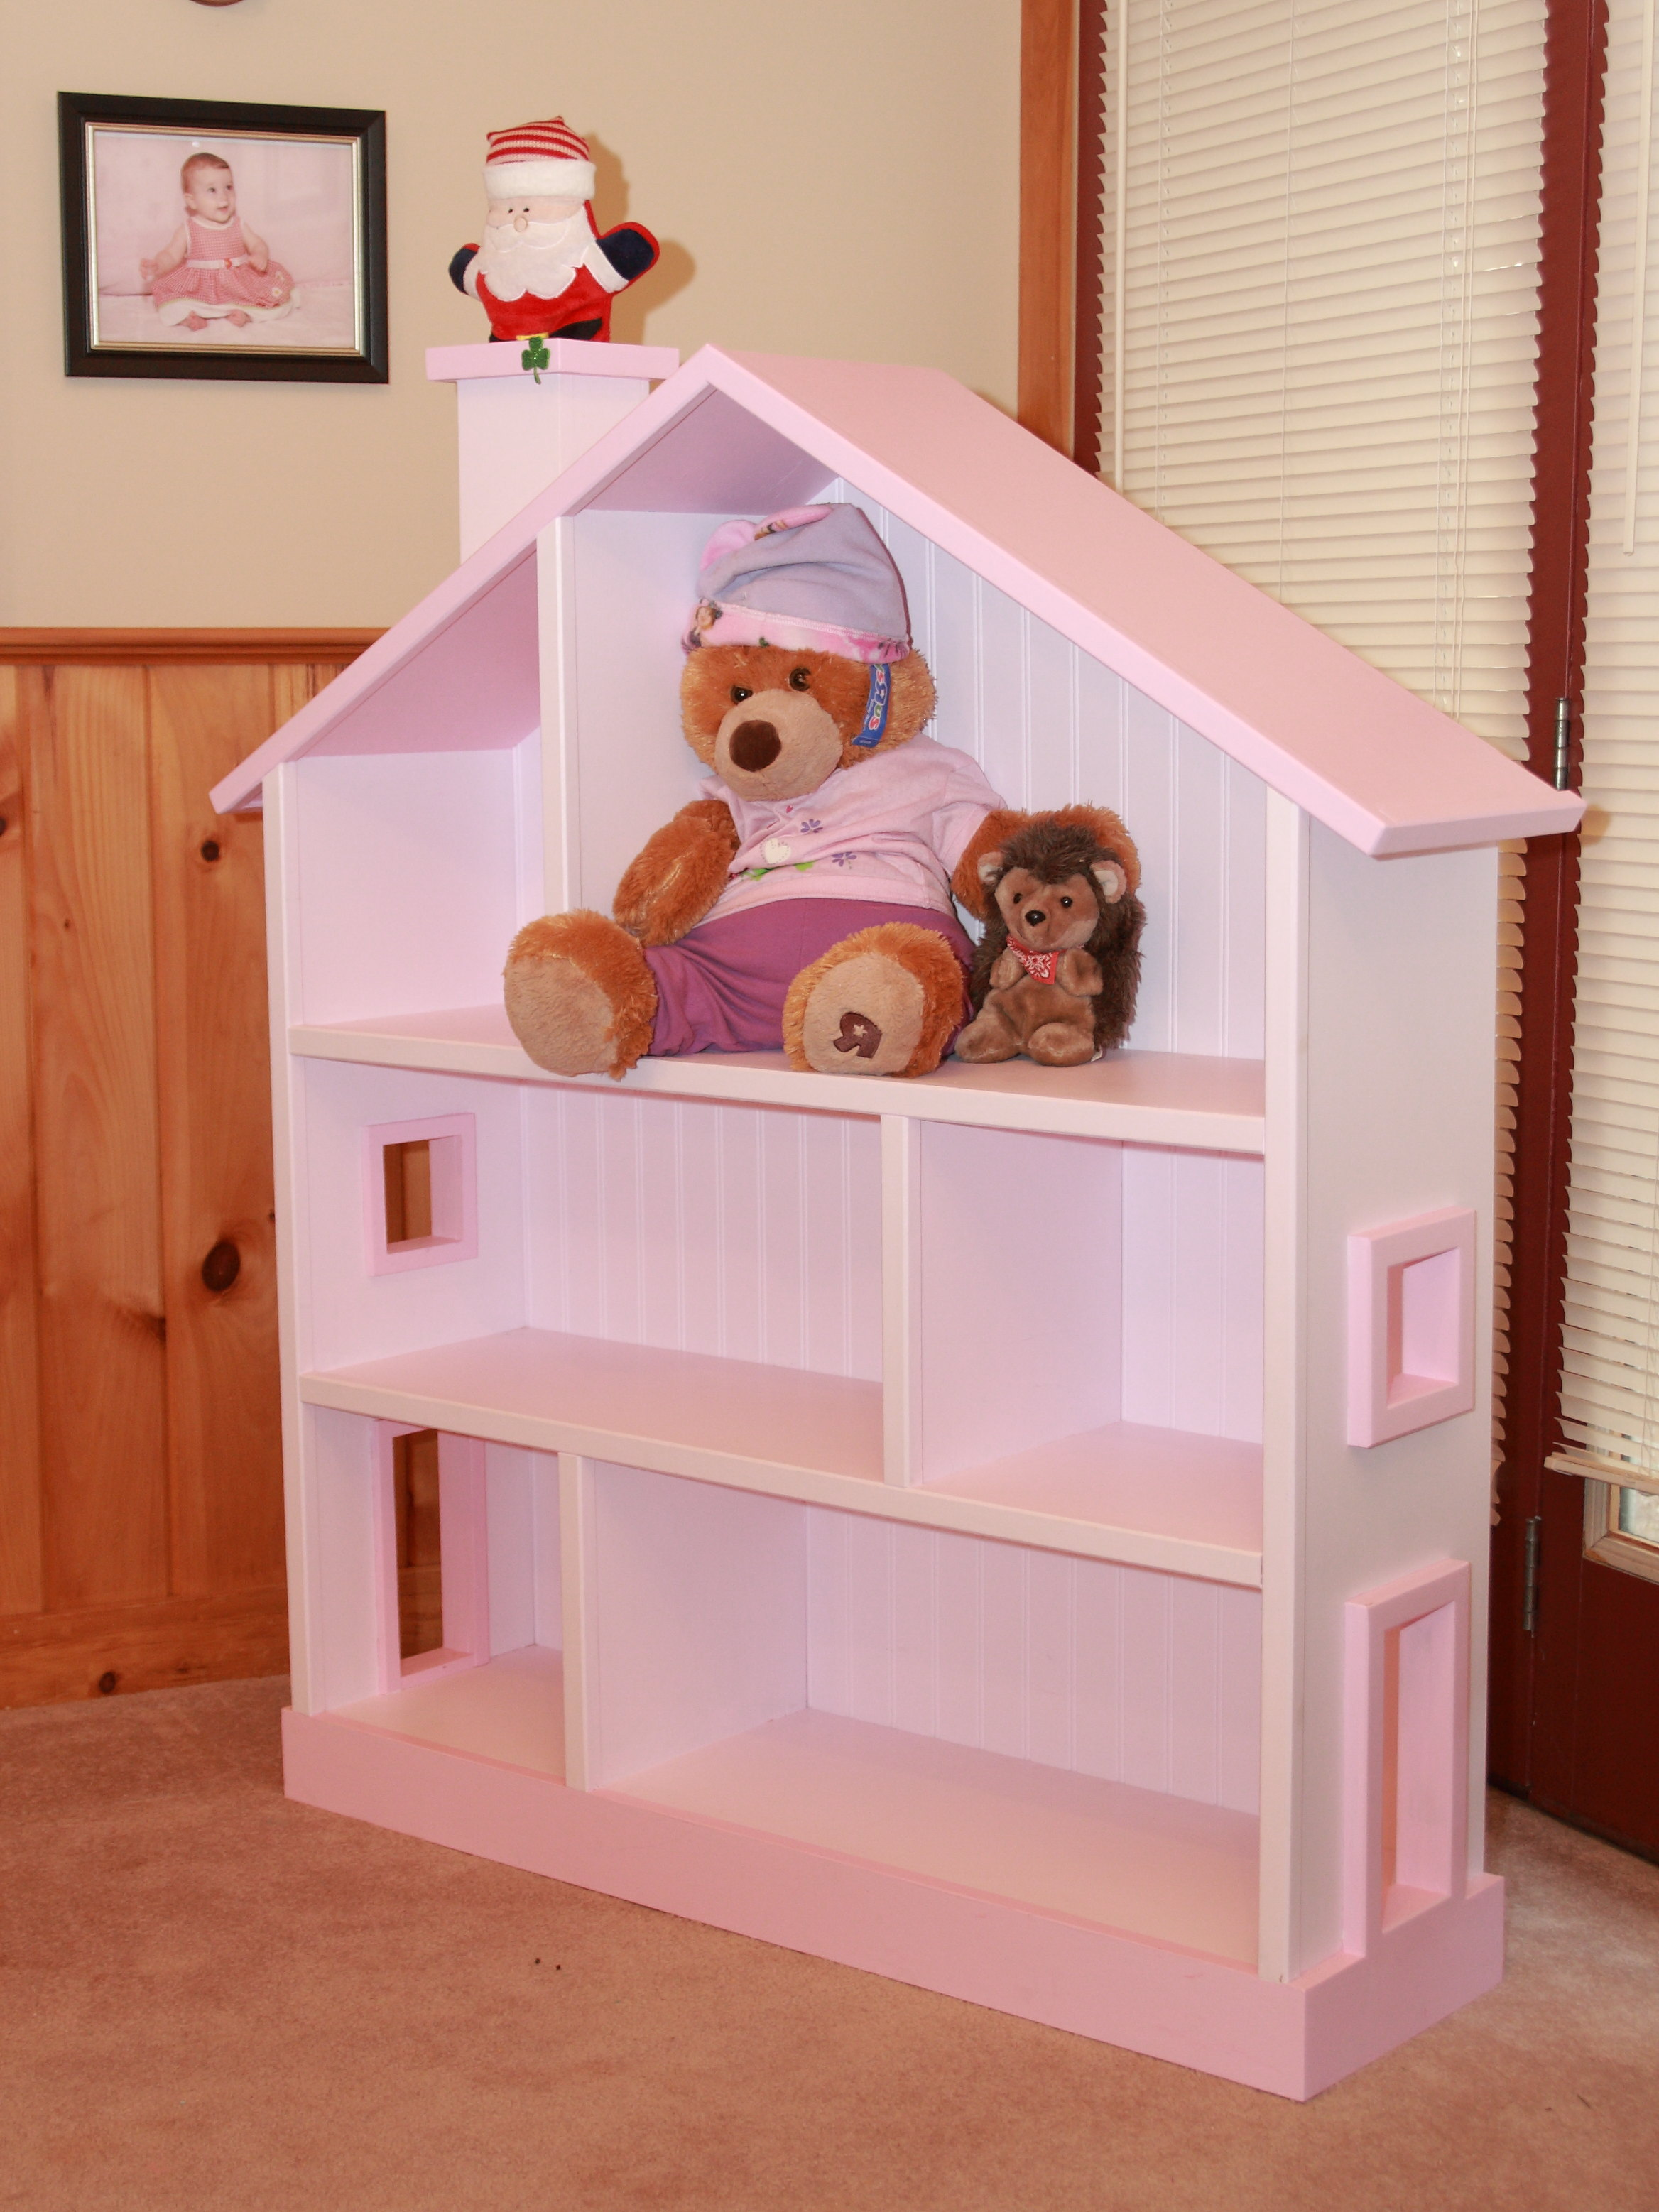 Bookcase Dollhouse Plans Woodworking Plans